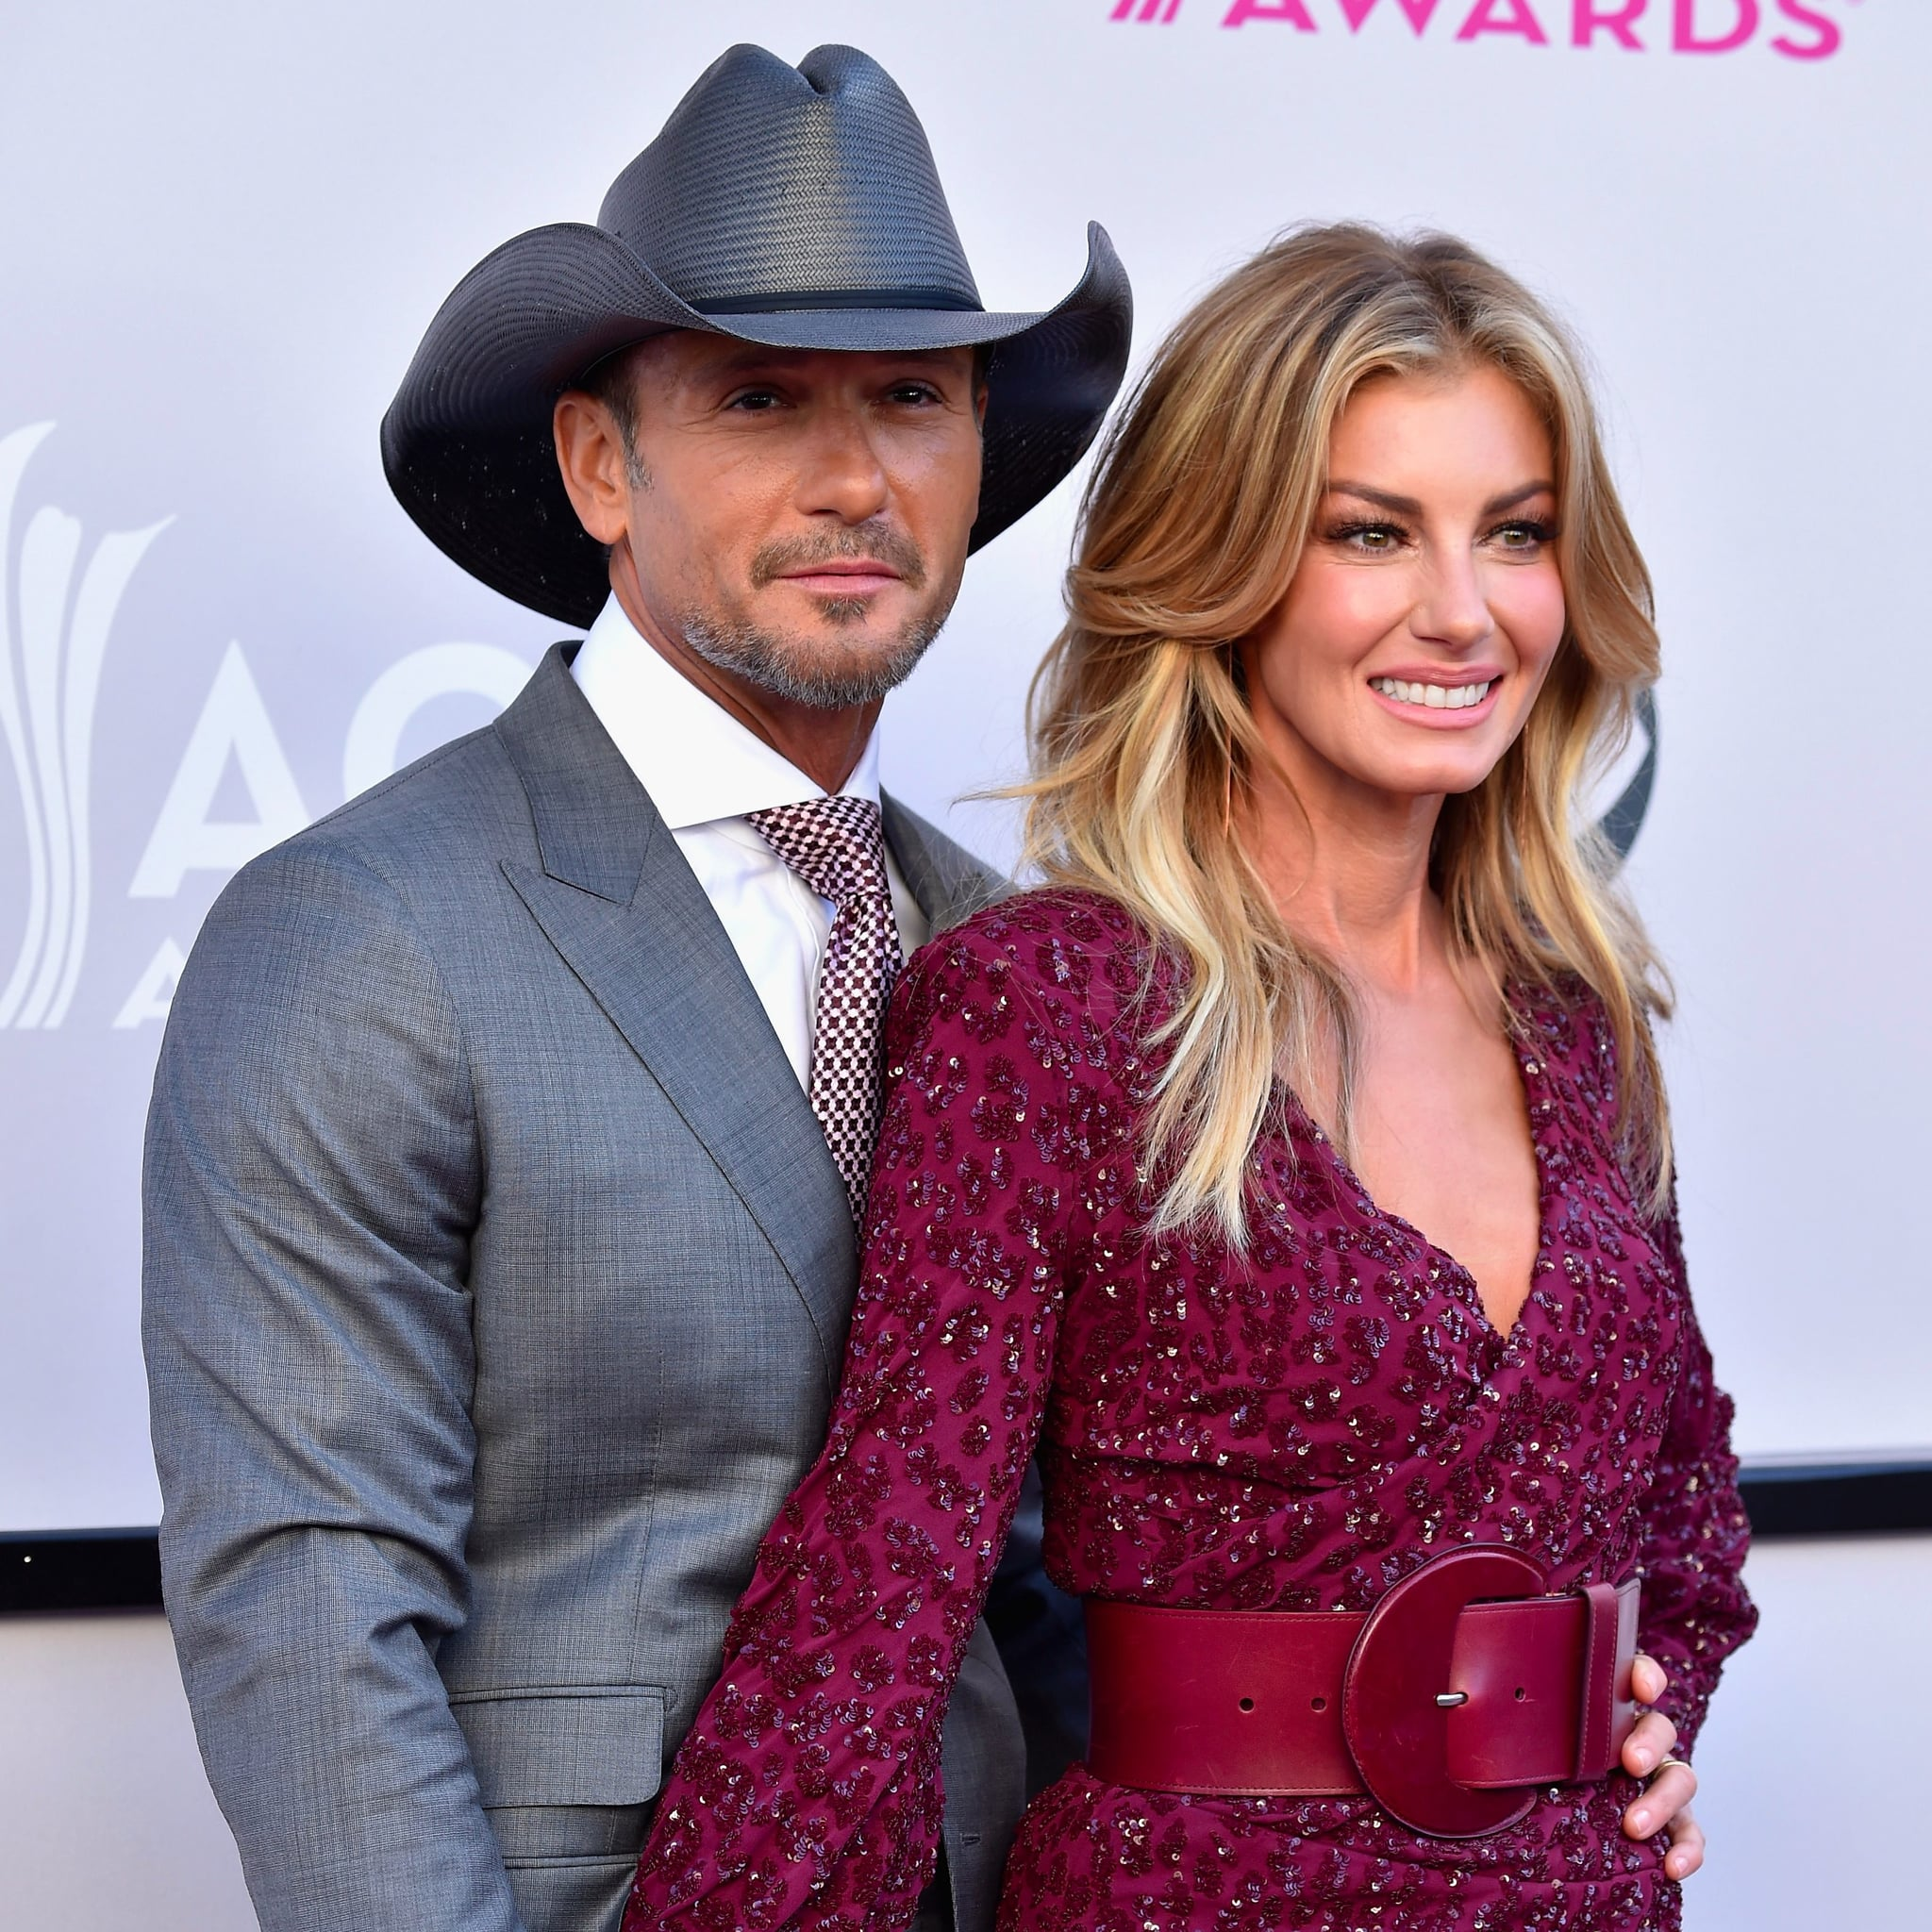 Tim Mcgraw And Faith Hill Wedding: 10 Famous Couples Reveal The Secret To A Happy Marriage